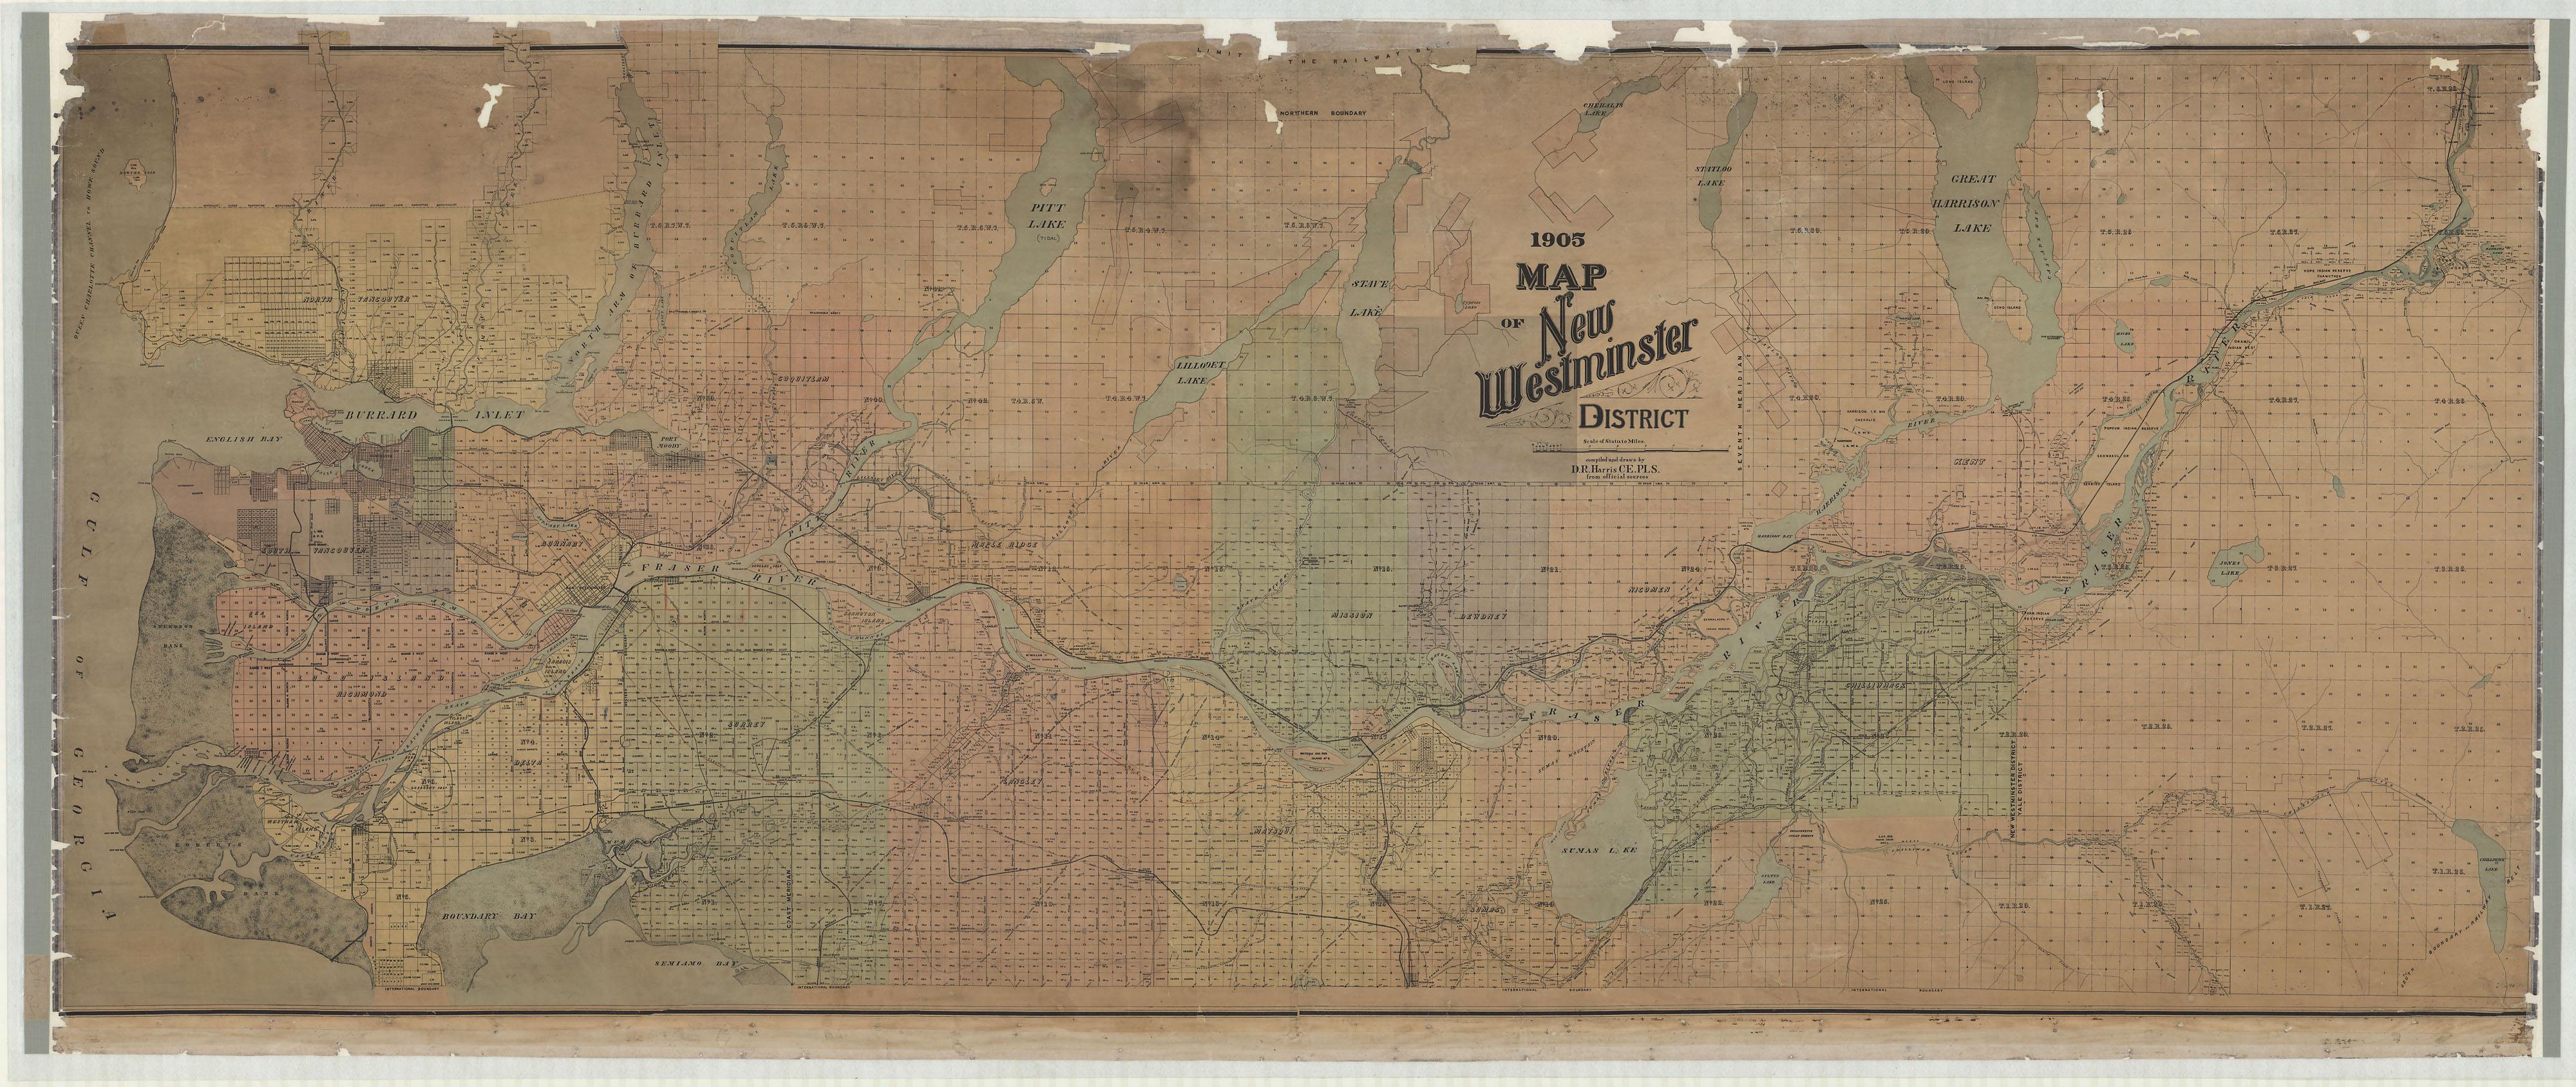 Image of the entire conserved map